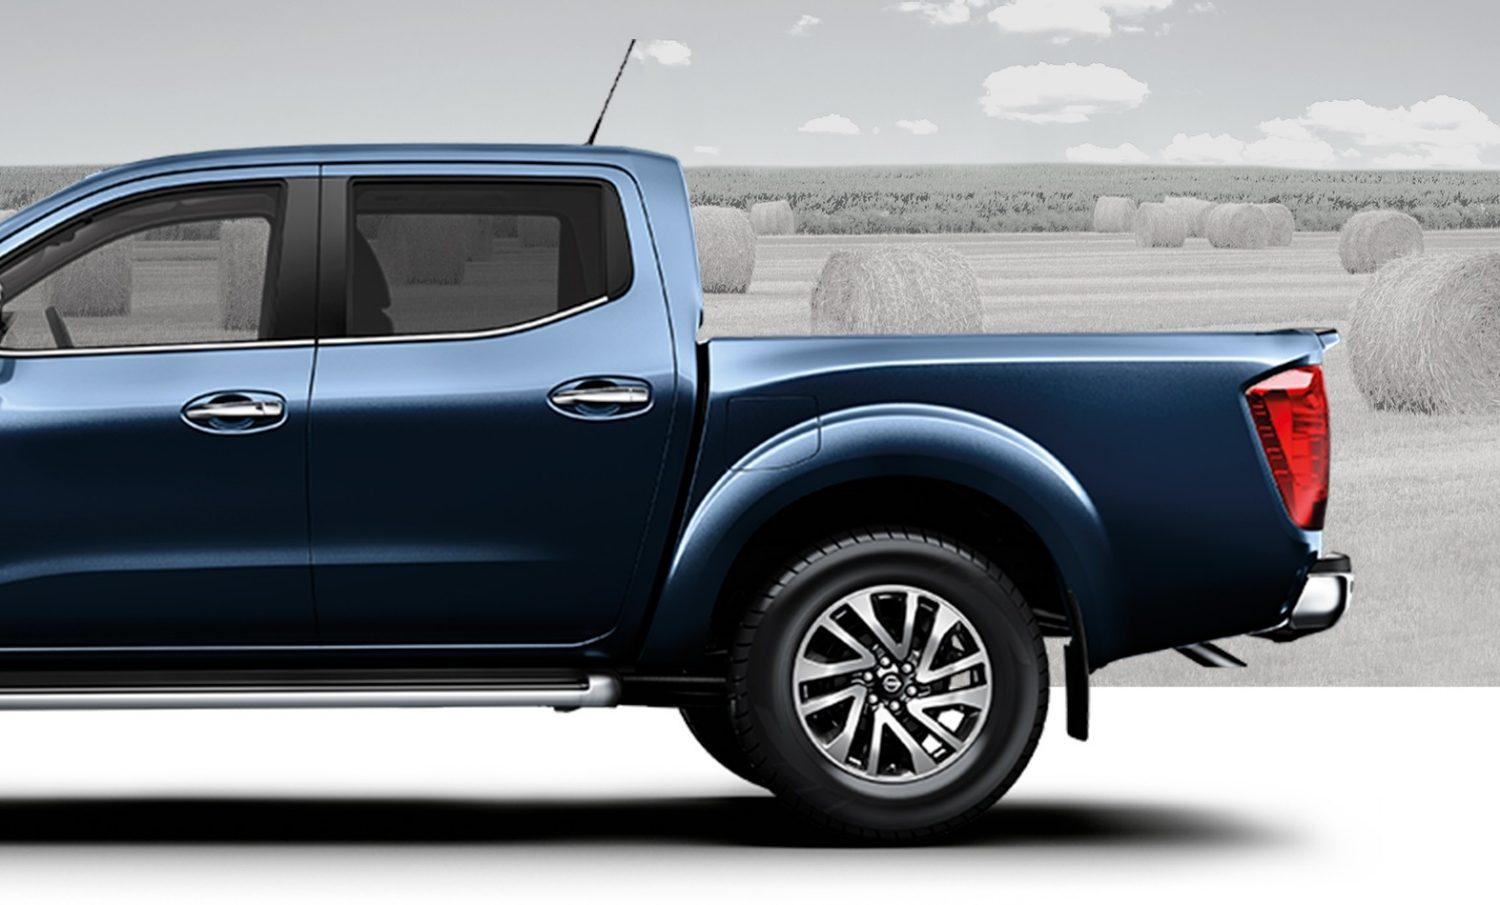 Nissan Navara King cab and double cab profiles